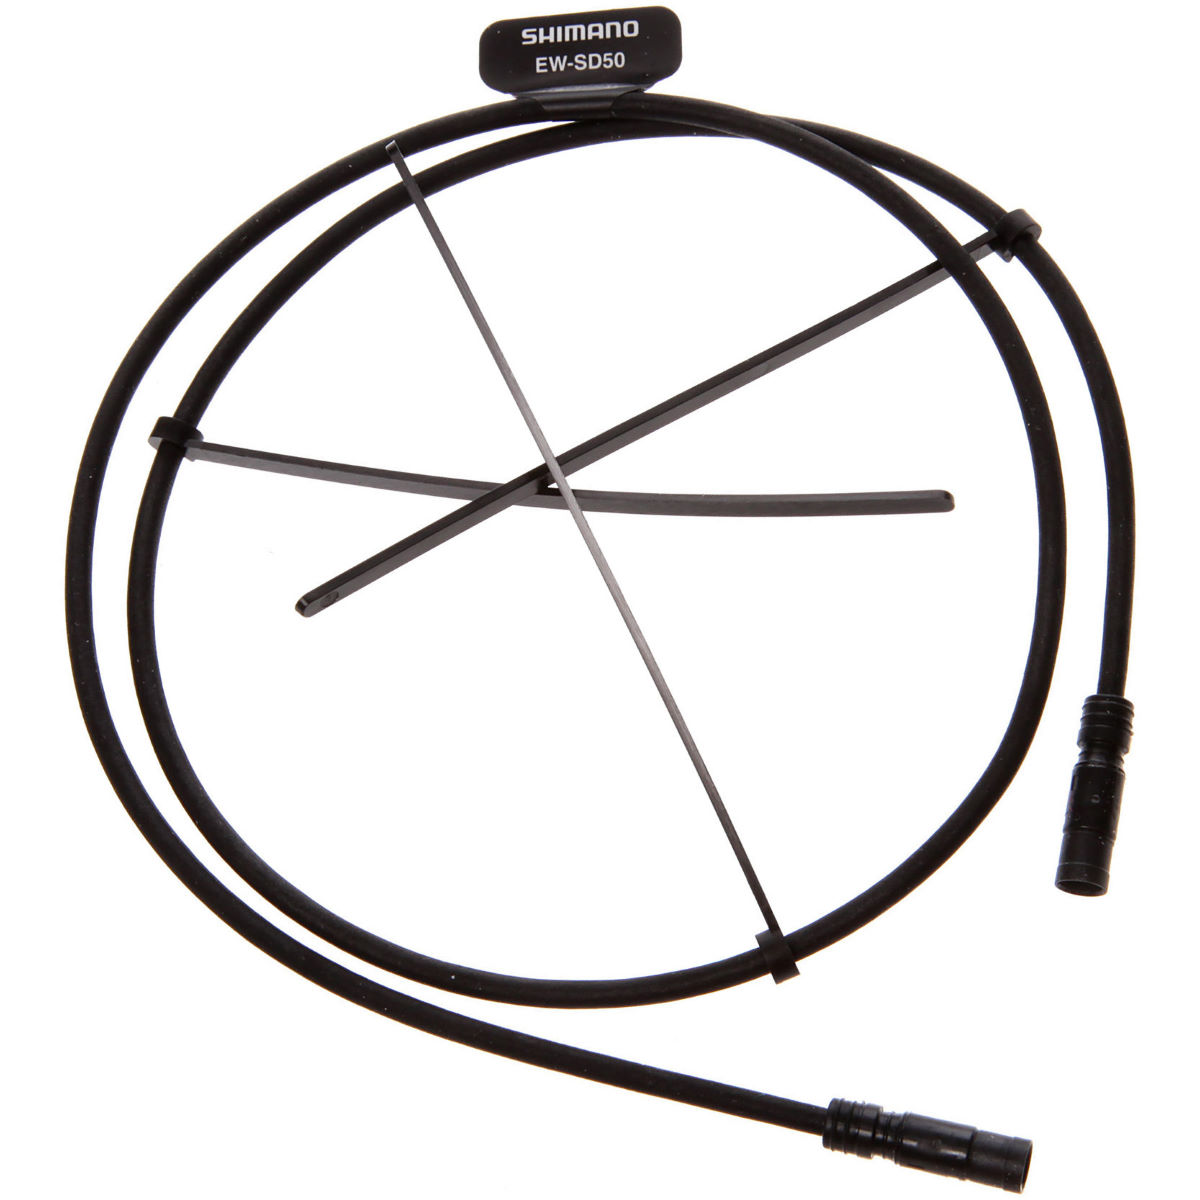 Cable Shimano EW-SD50 E-Tube Di2 - Cables de cambio